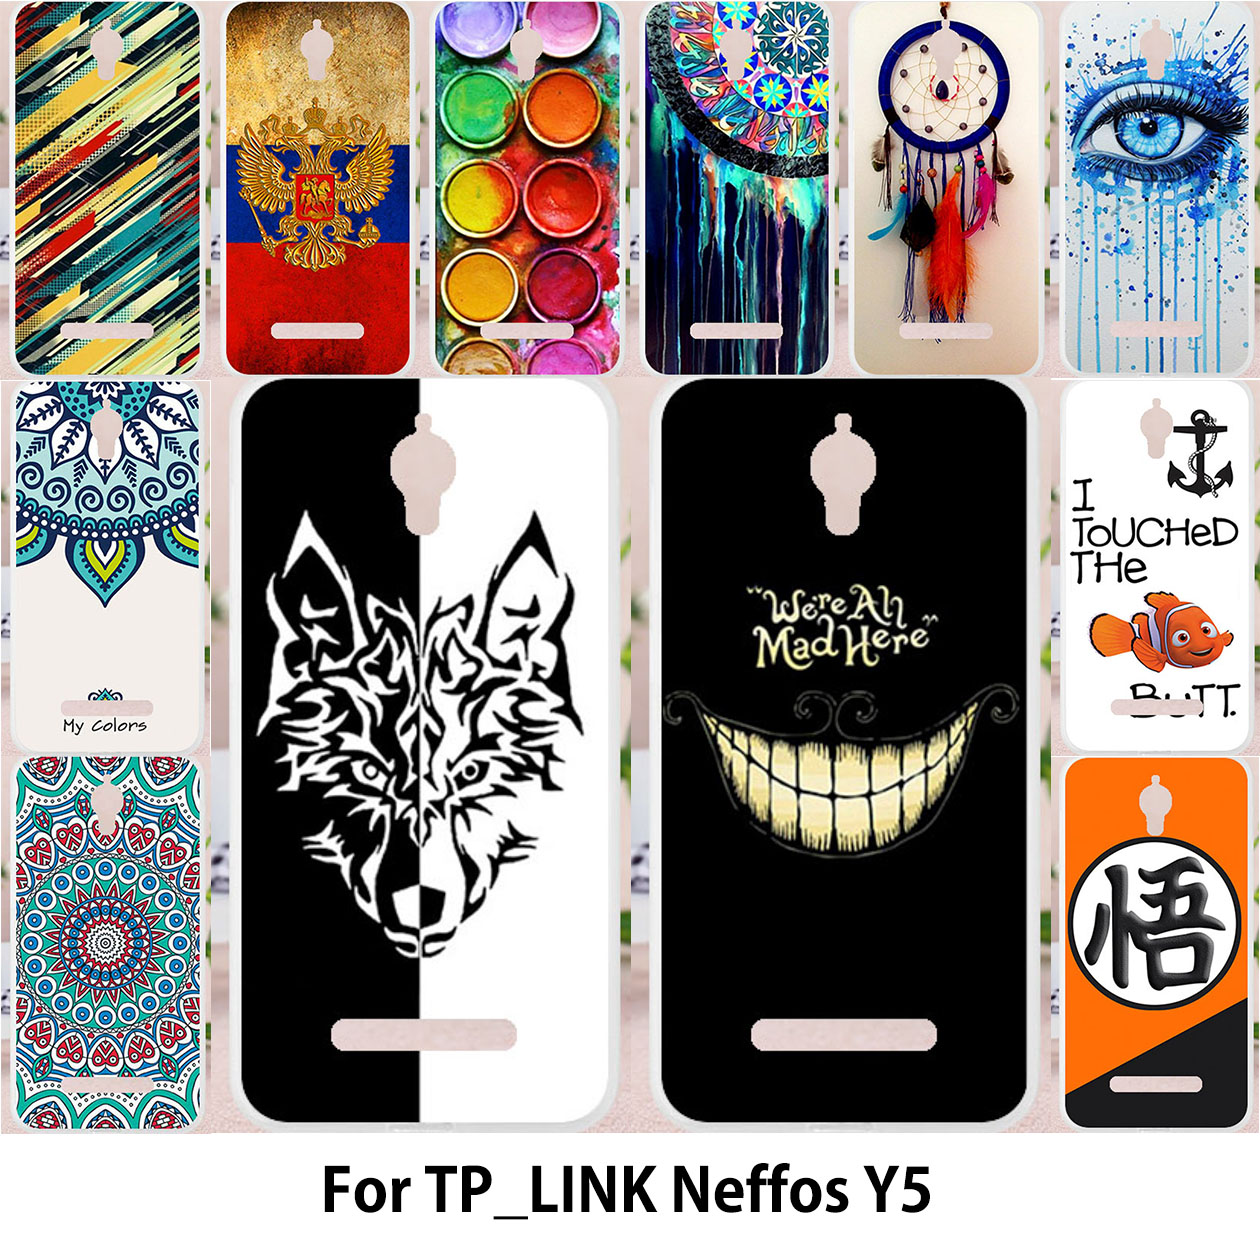 TAOYUNXI For TP-LINK Neffos Y5 case Silicon Case For TPLINK Neffos Y5 TP802A Cover Dreamcatcher Patterned Chinese character